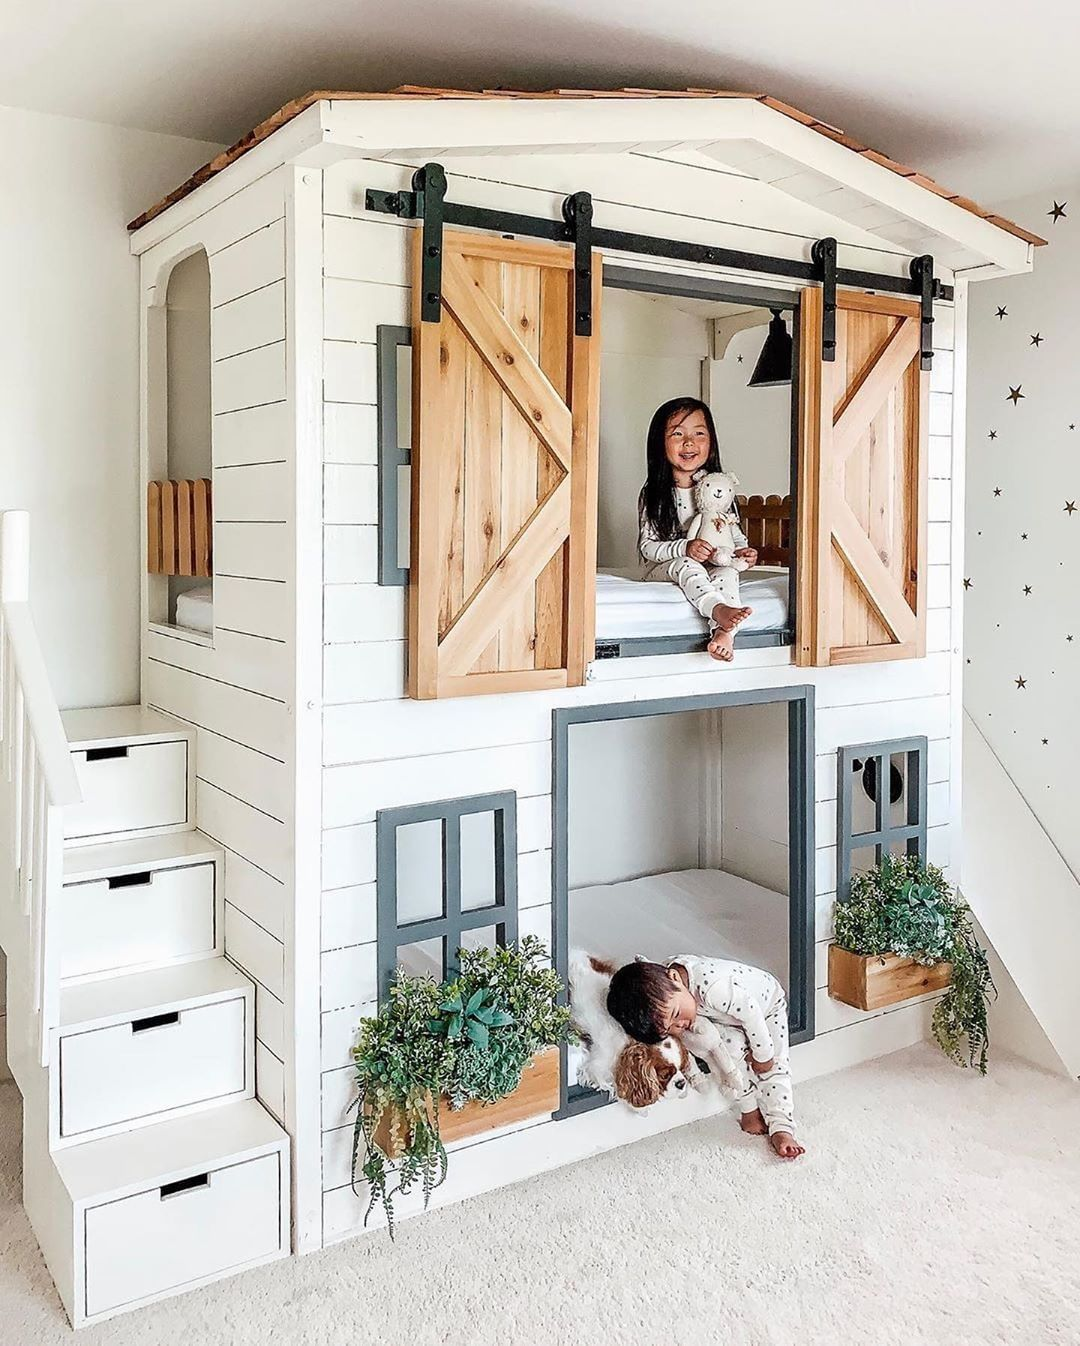 nursery decor kids room (2)   House bunk bed, Girl bedroom ... on Bed Ideas For Small Rooms  id=51214